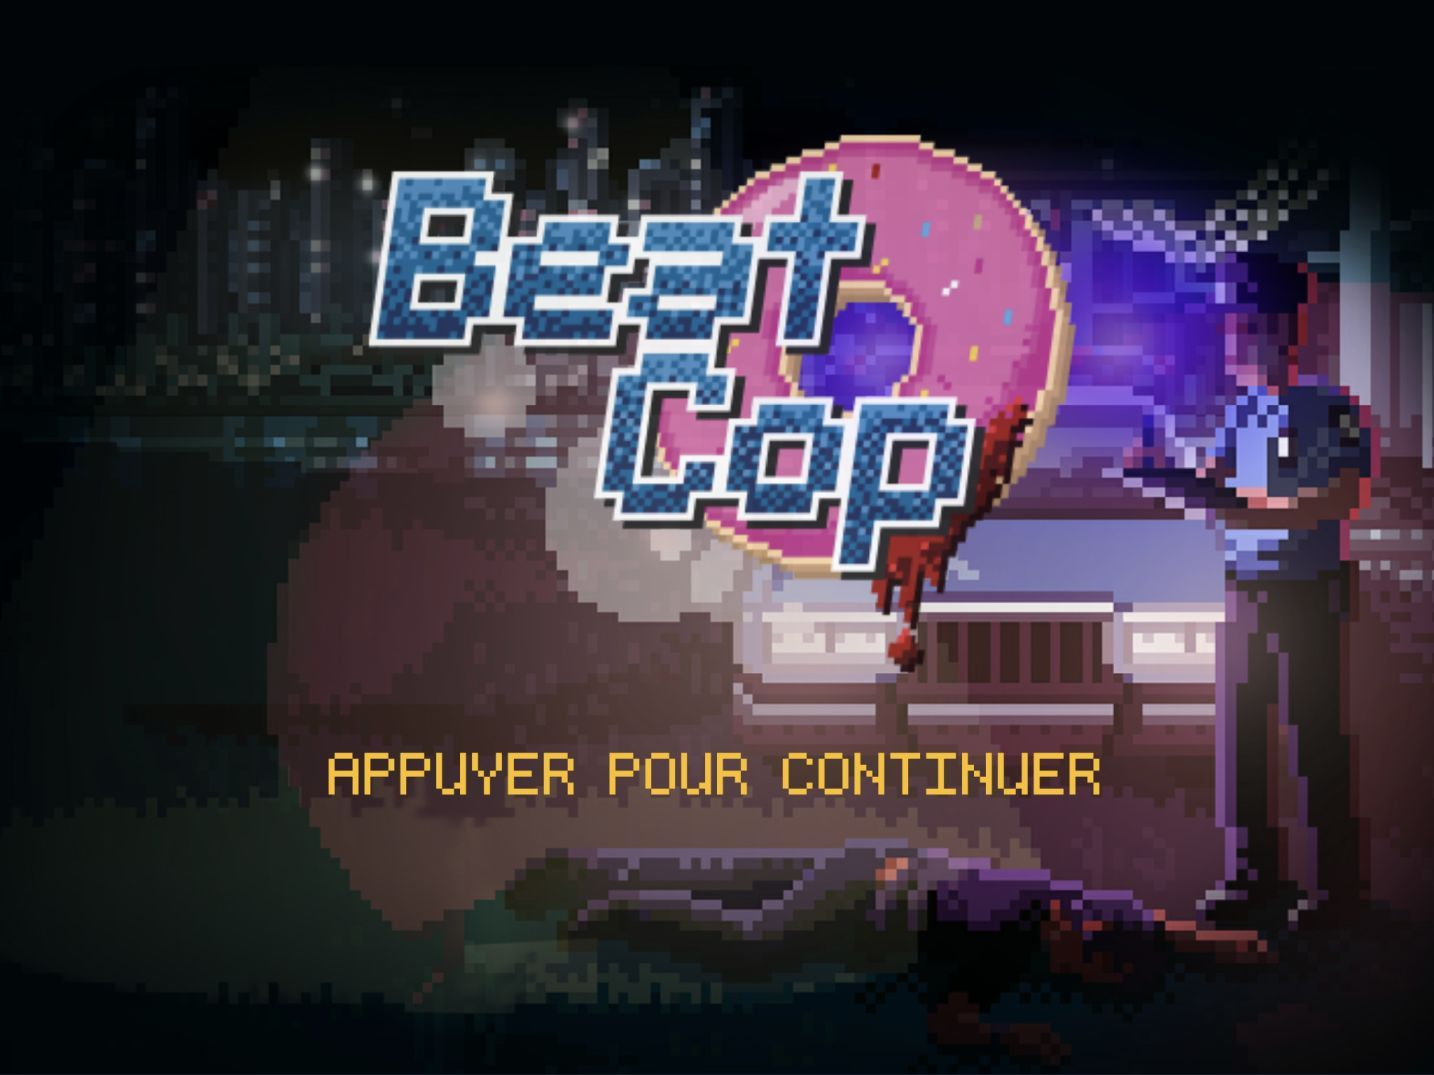 Beat Cop (copie d'écran 1 sur iPhone / iPad)